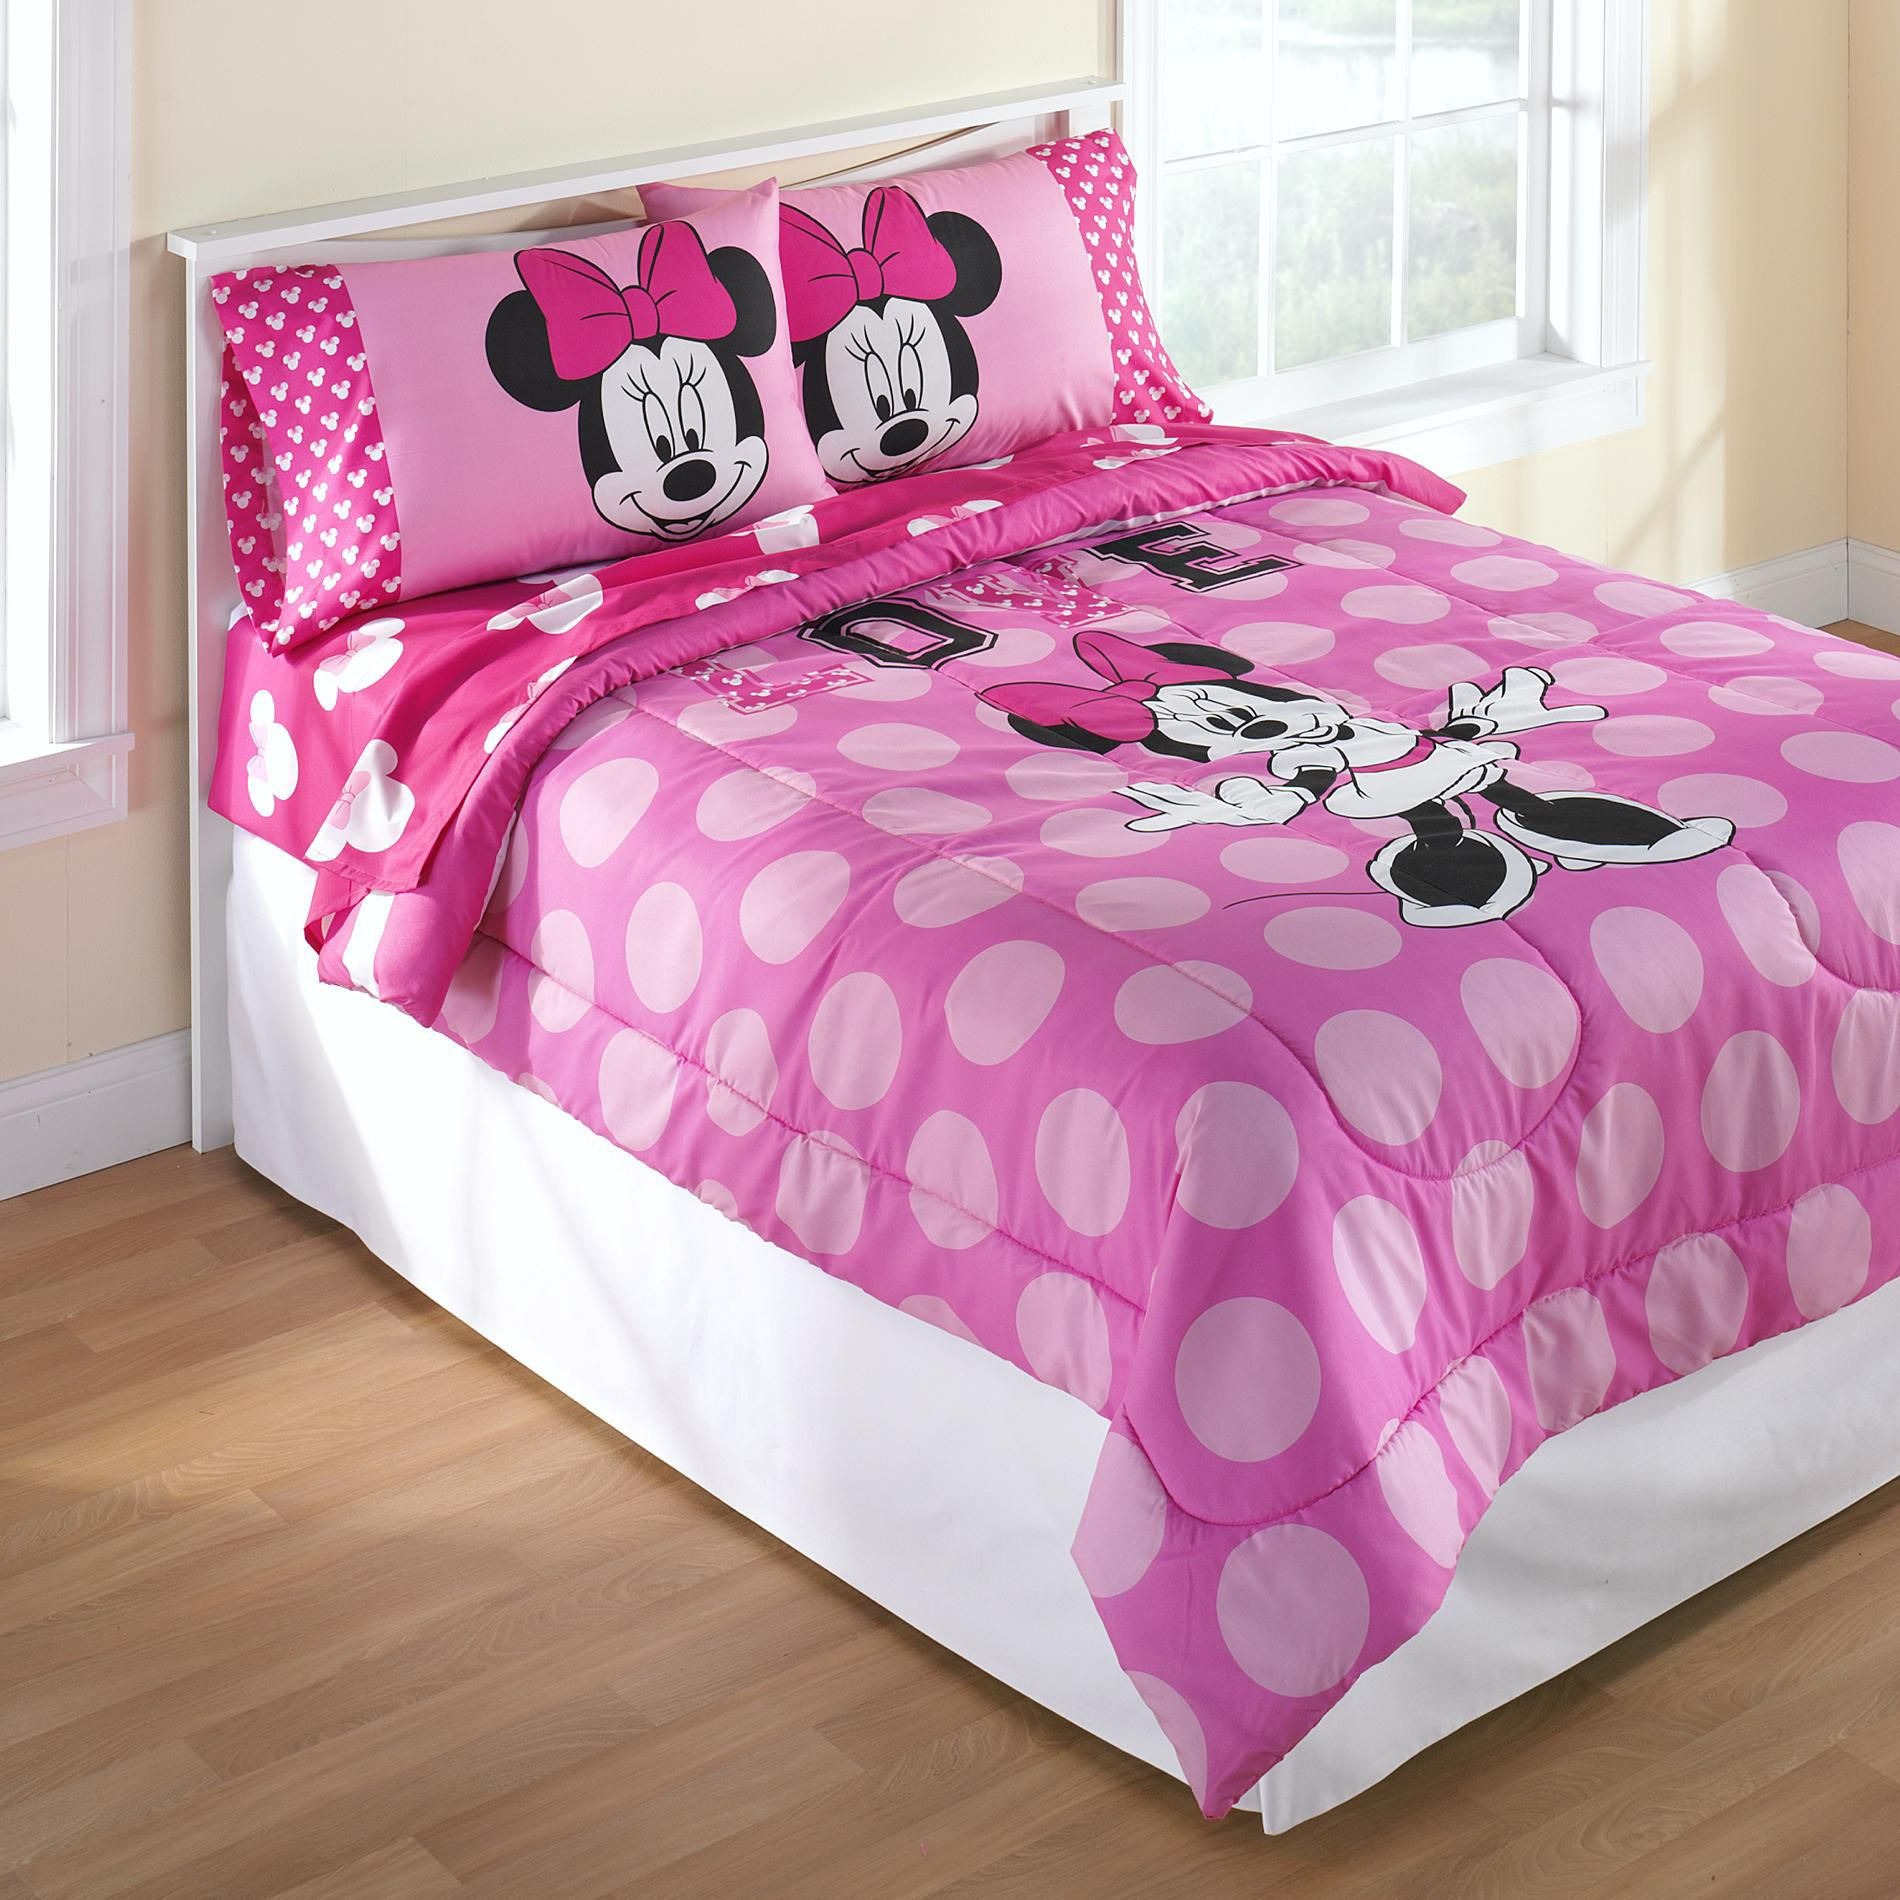 Disney Minnie Mouse Twin/Full Comforter